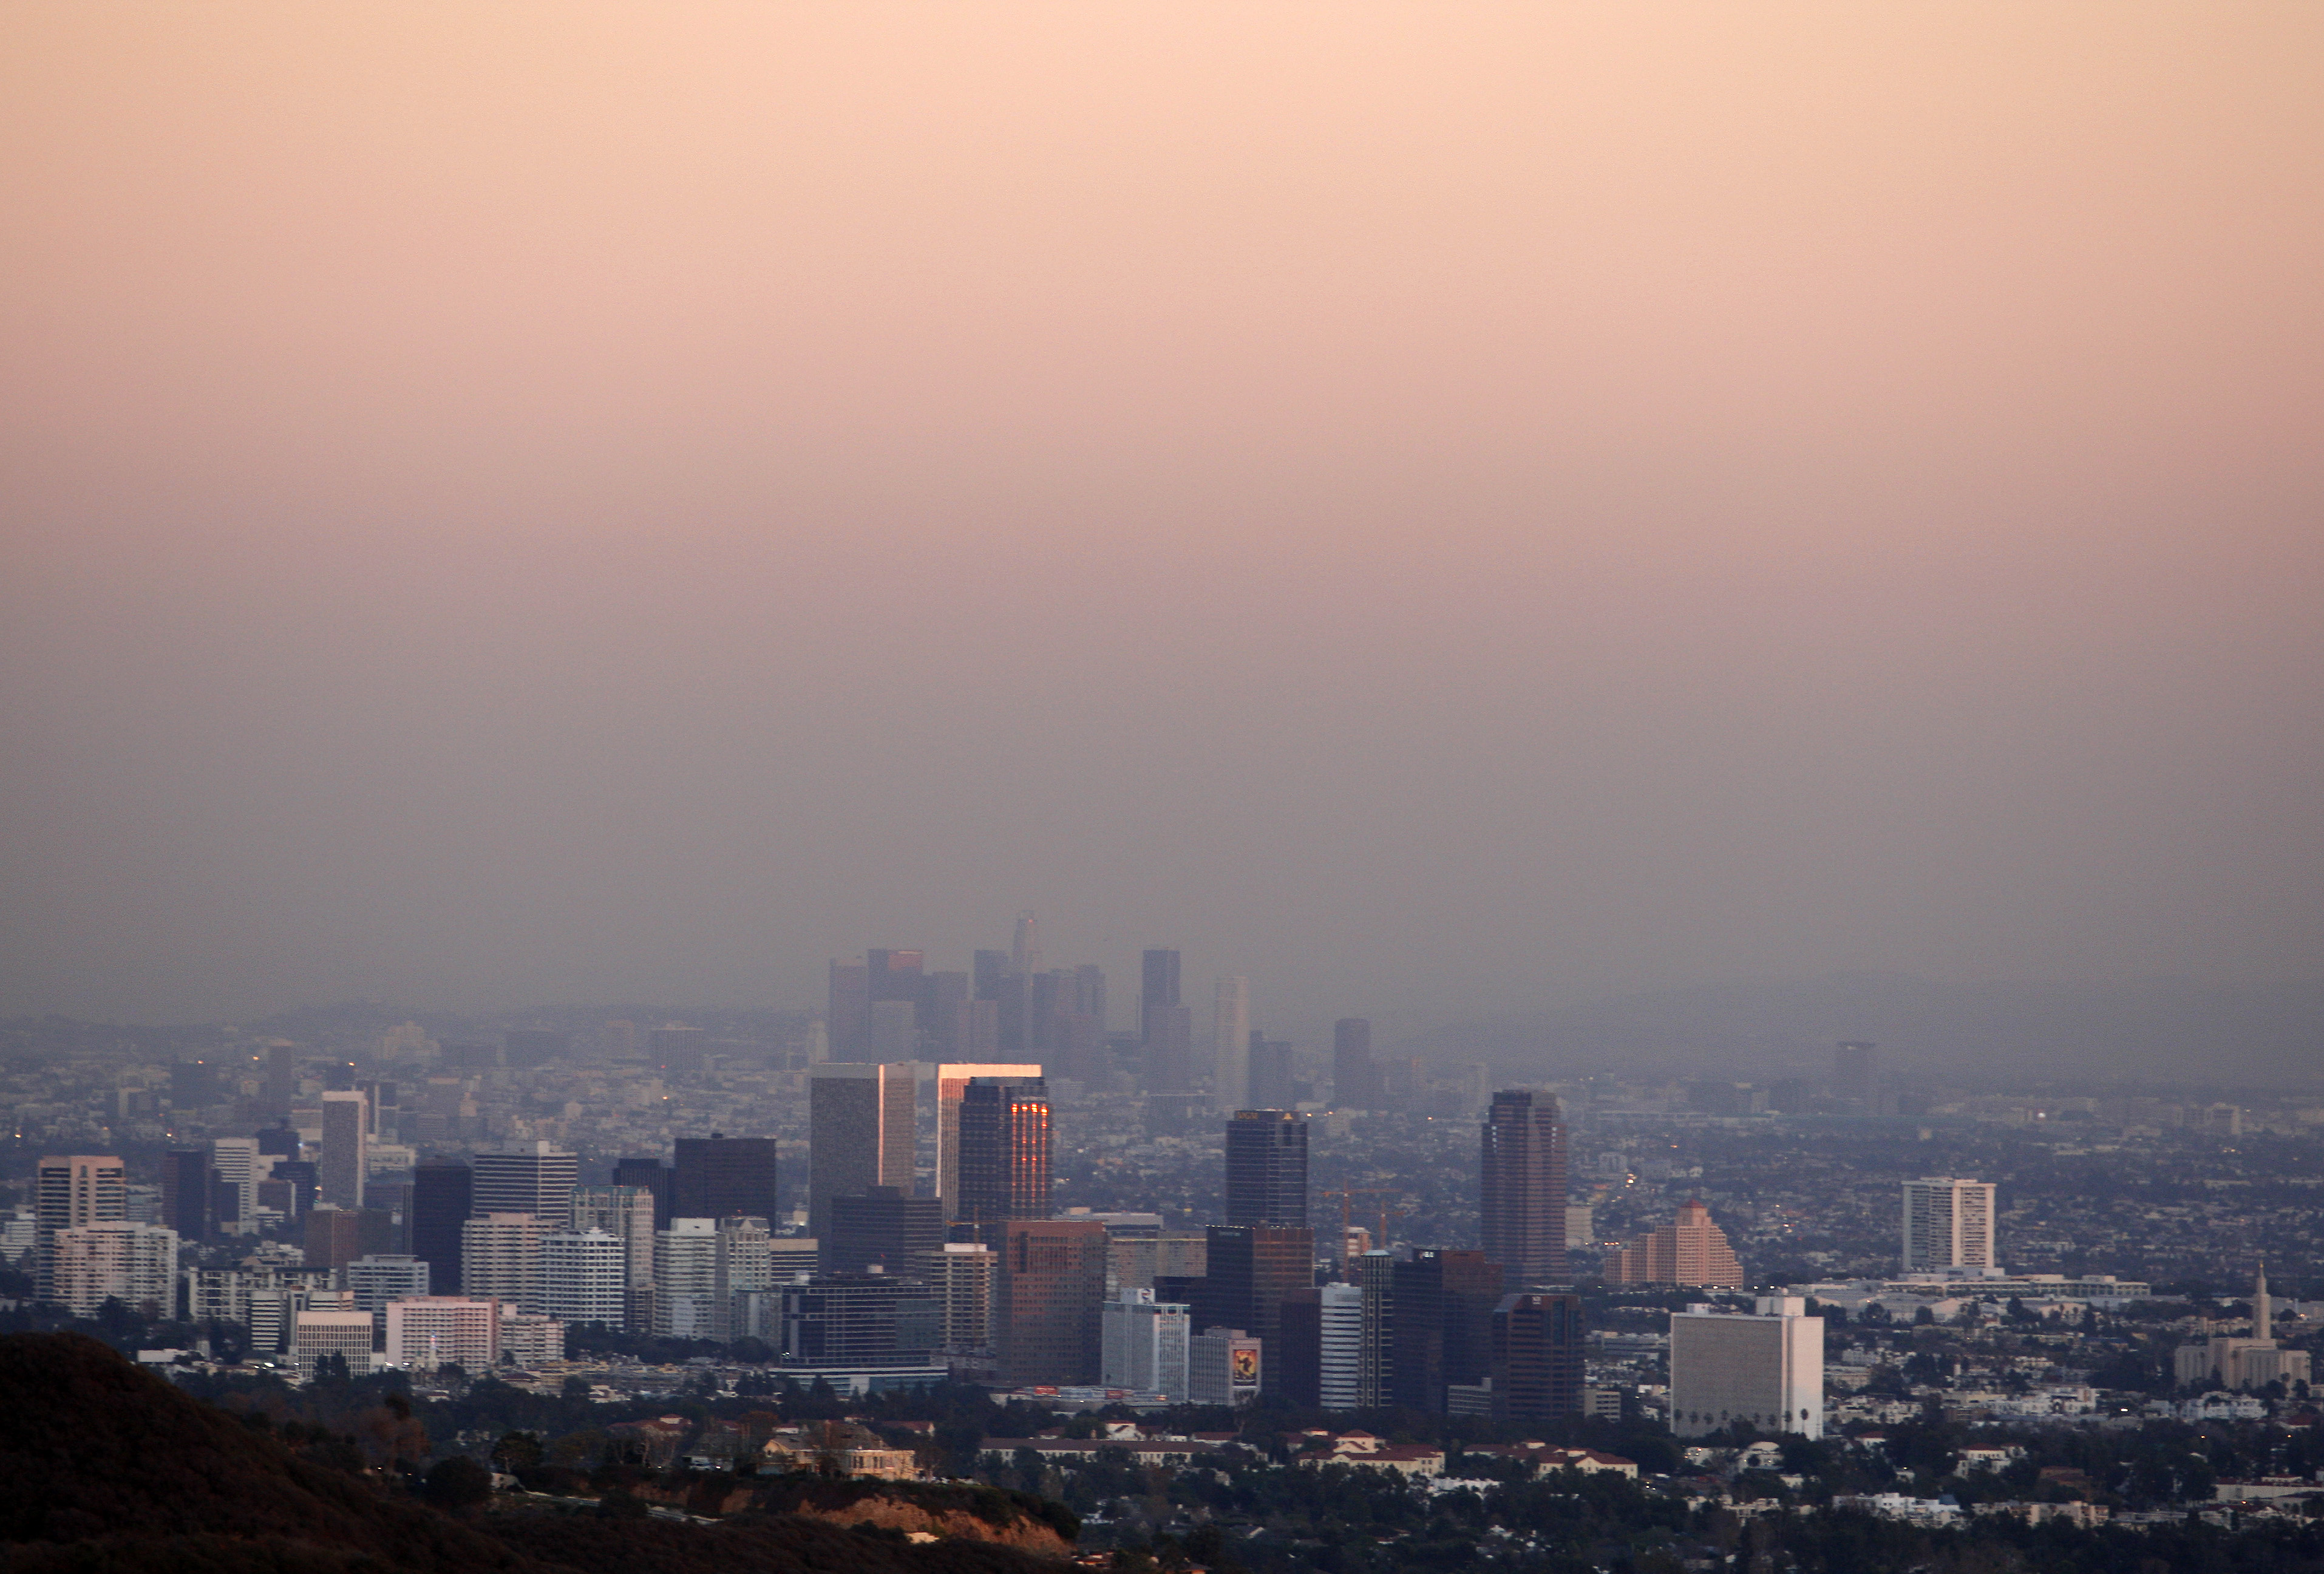 Century City and downtown Los Angeles are seen through the smog